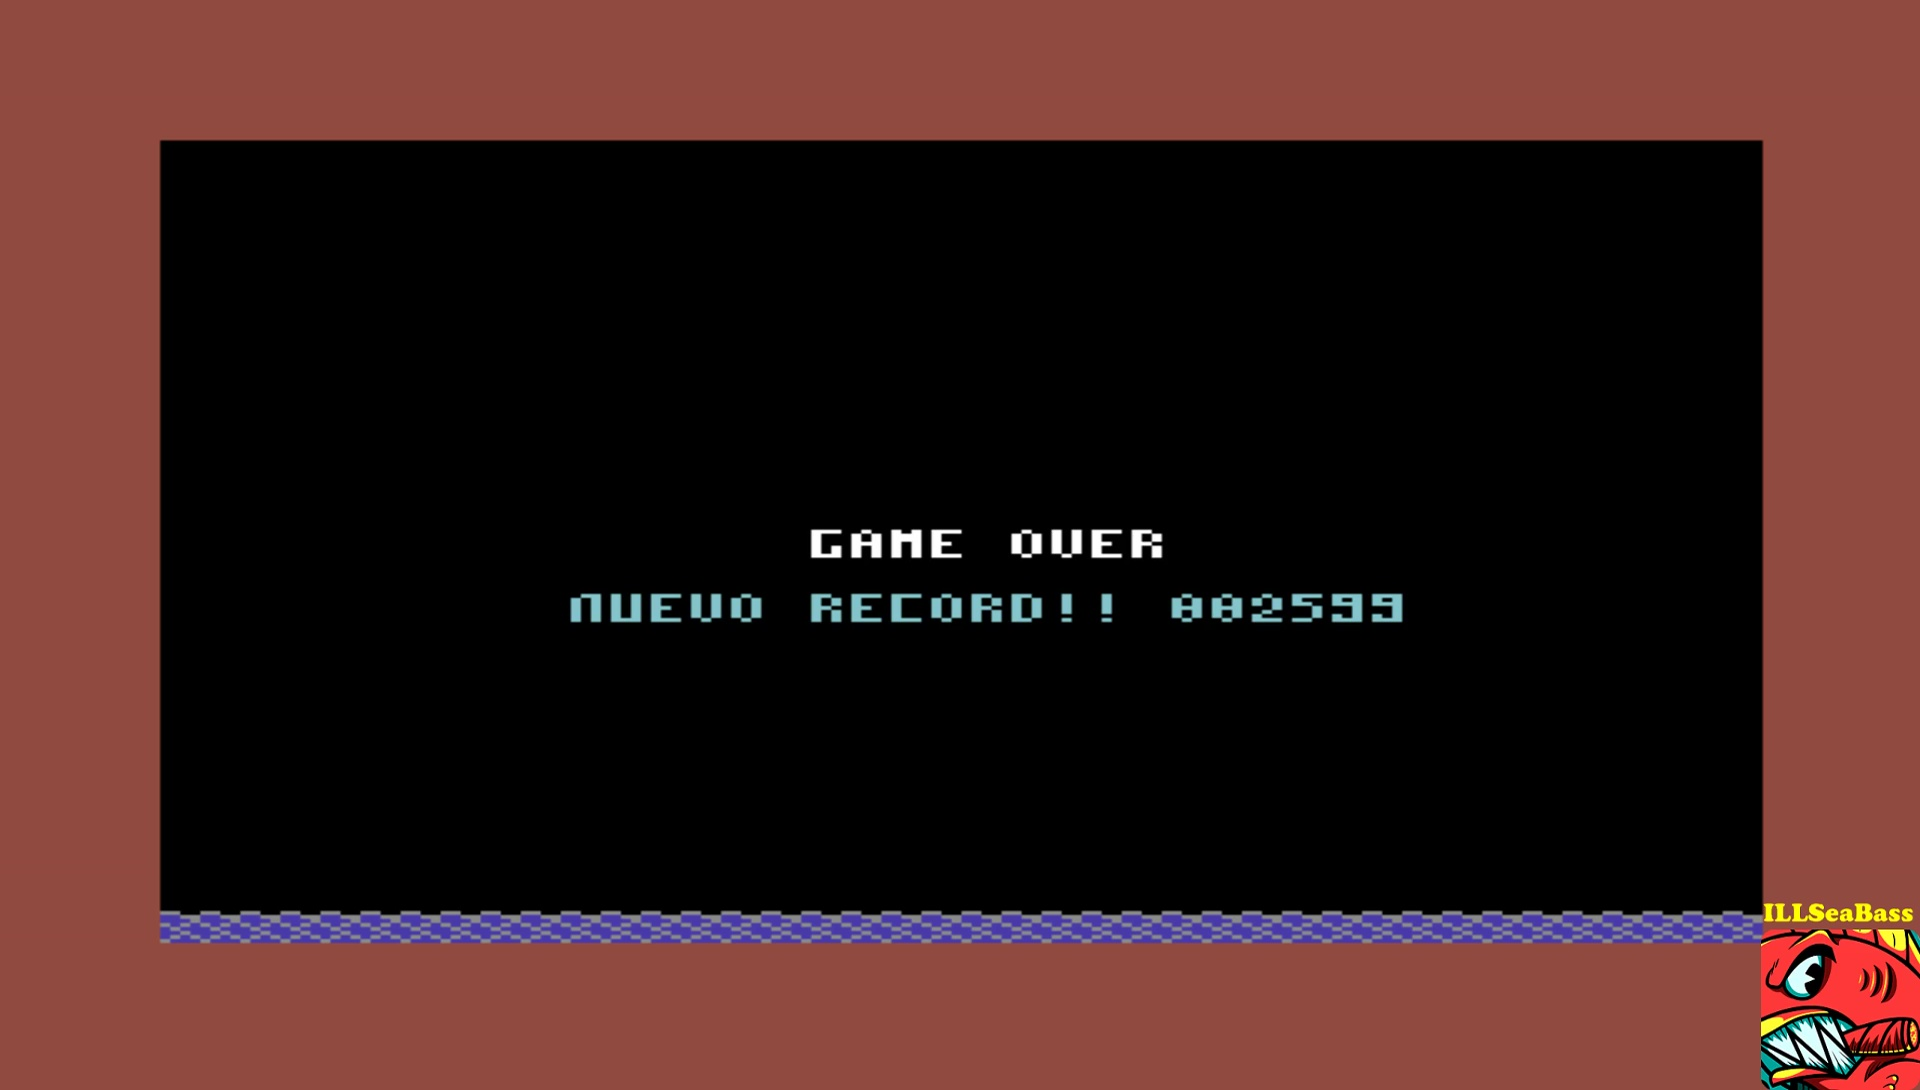 ILLSeaBass: Rowman (Commodore 64 Emulated) 2,599 points on 2017-05-21 21:01:56